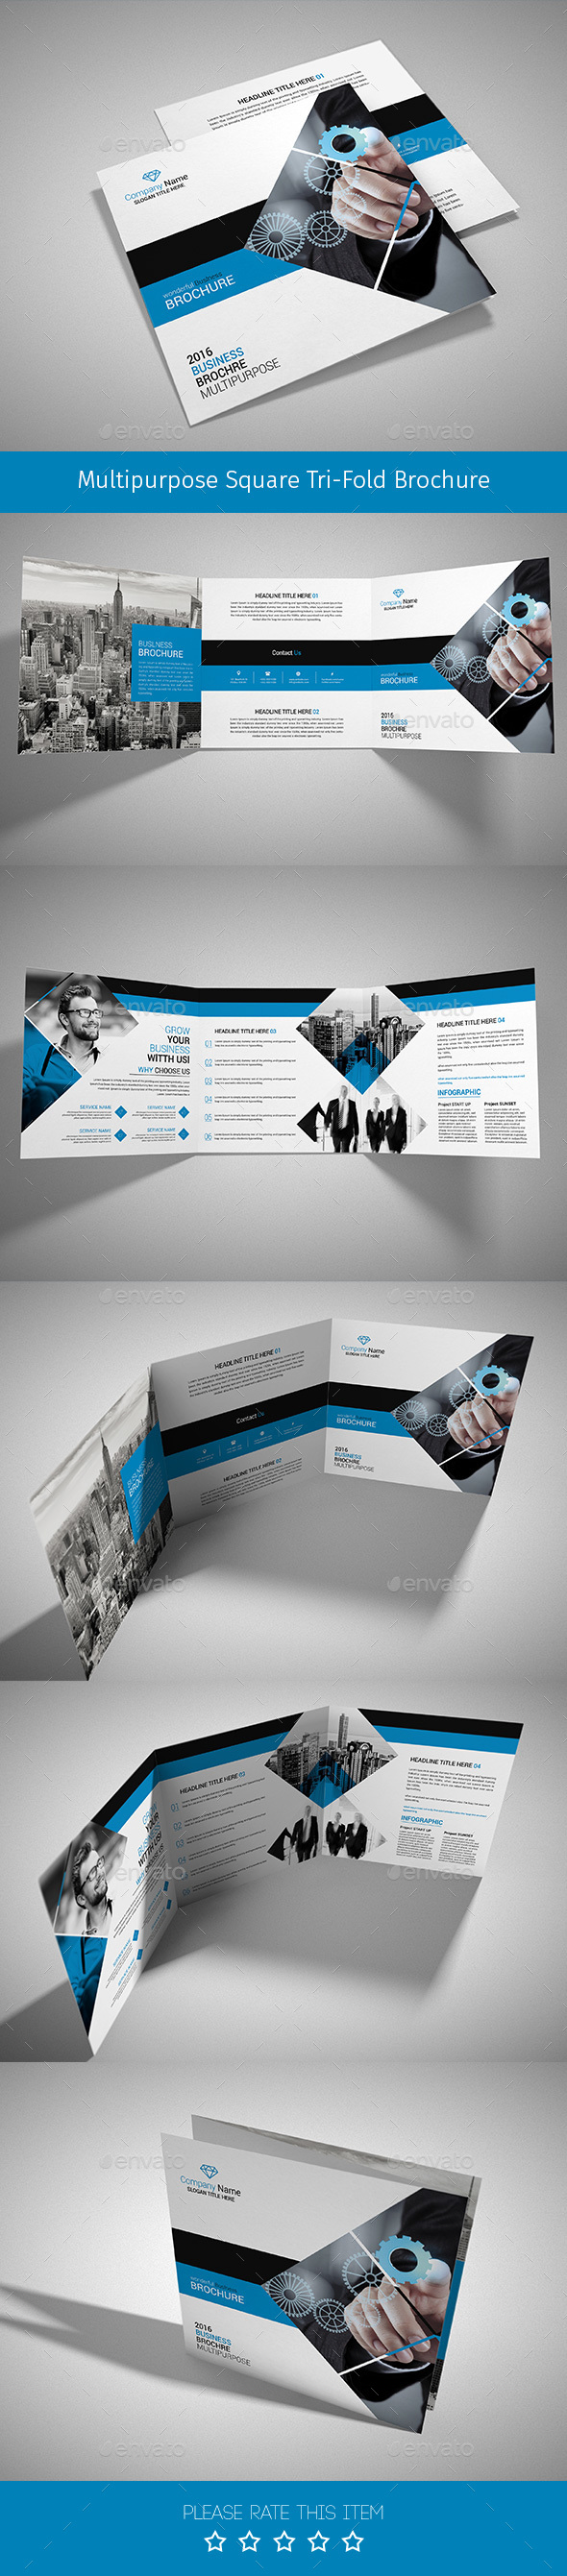 Corporate Tri-fold Square Brochure 03 - Corporate Brochures